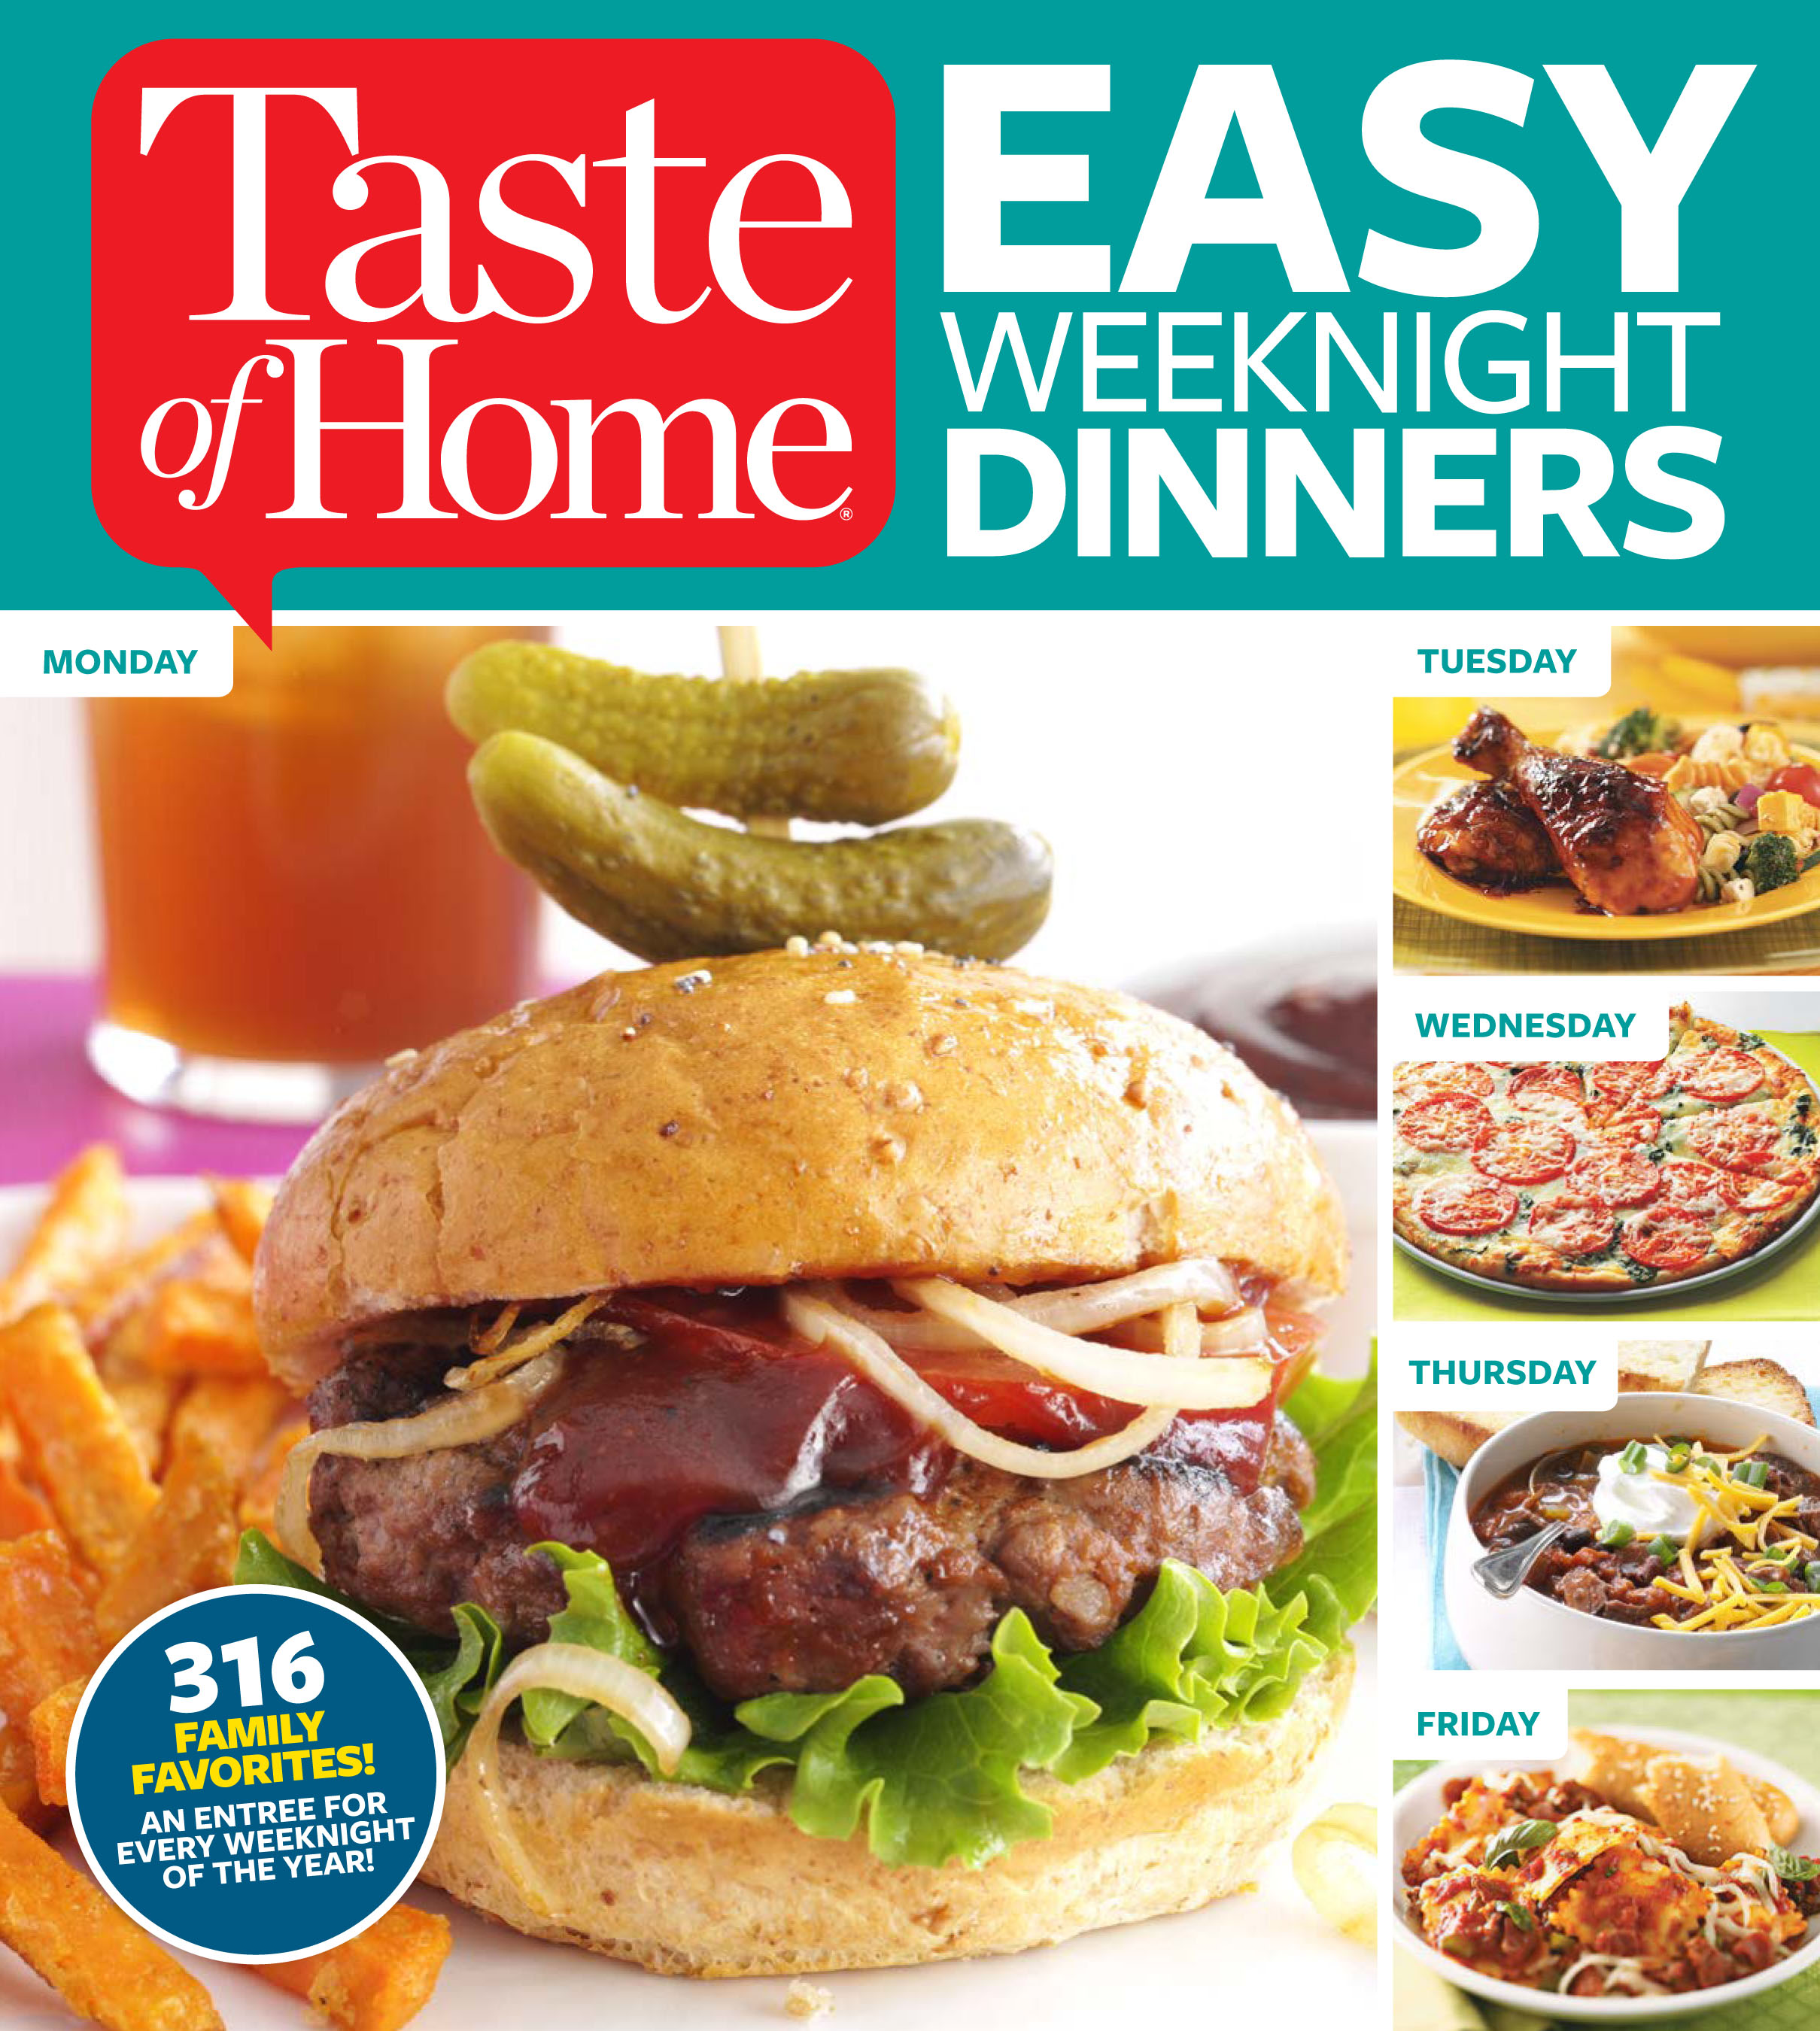 316 Family Favorites An Entree For Every Weeknight Of The Year Taste Home Easy Dinners